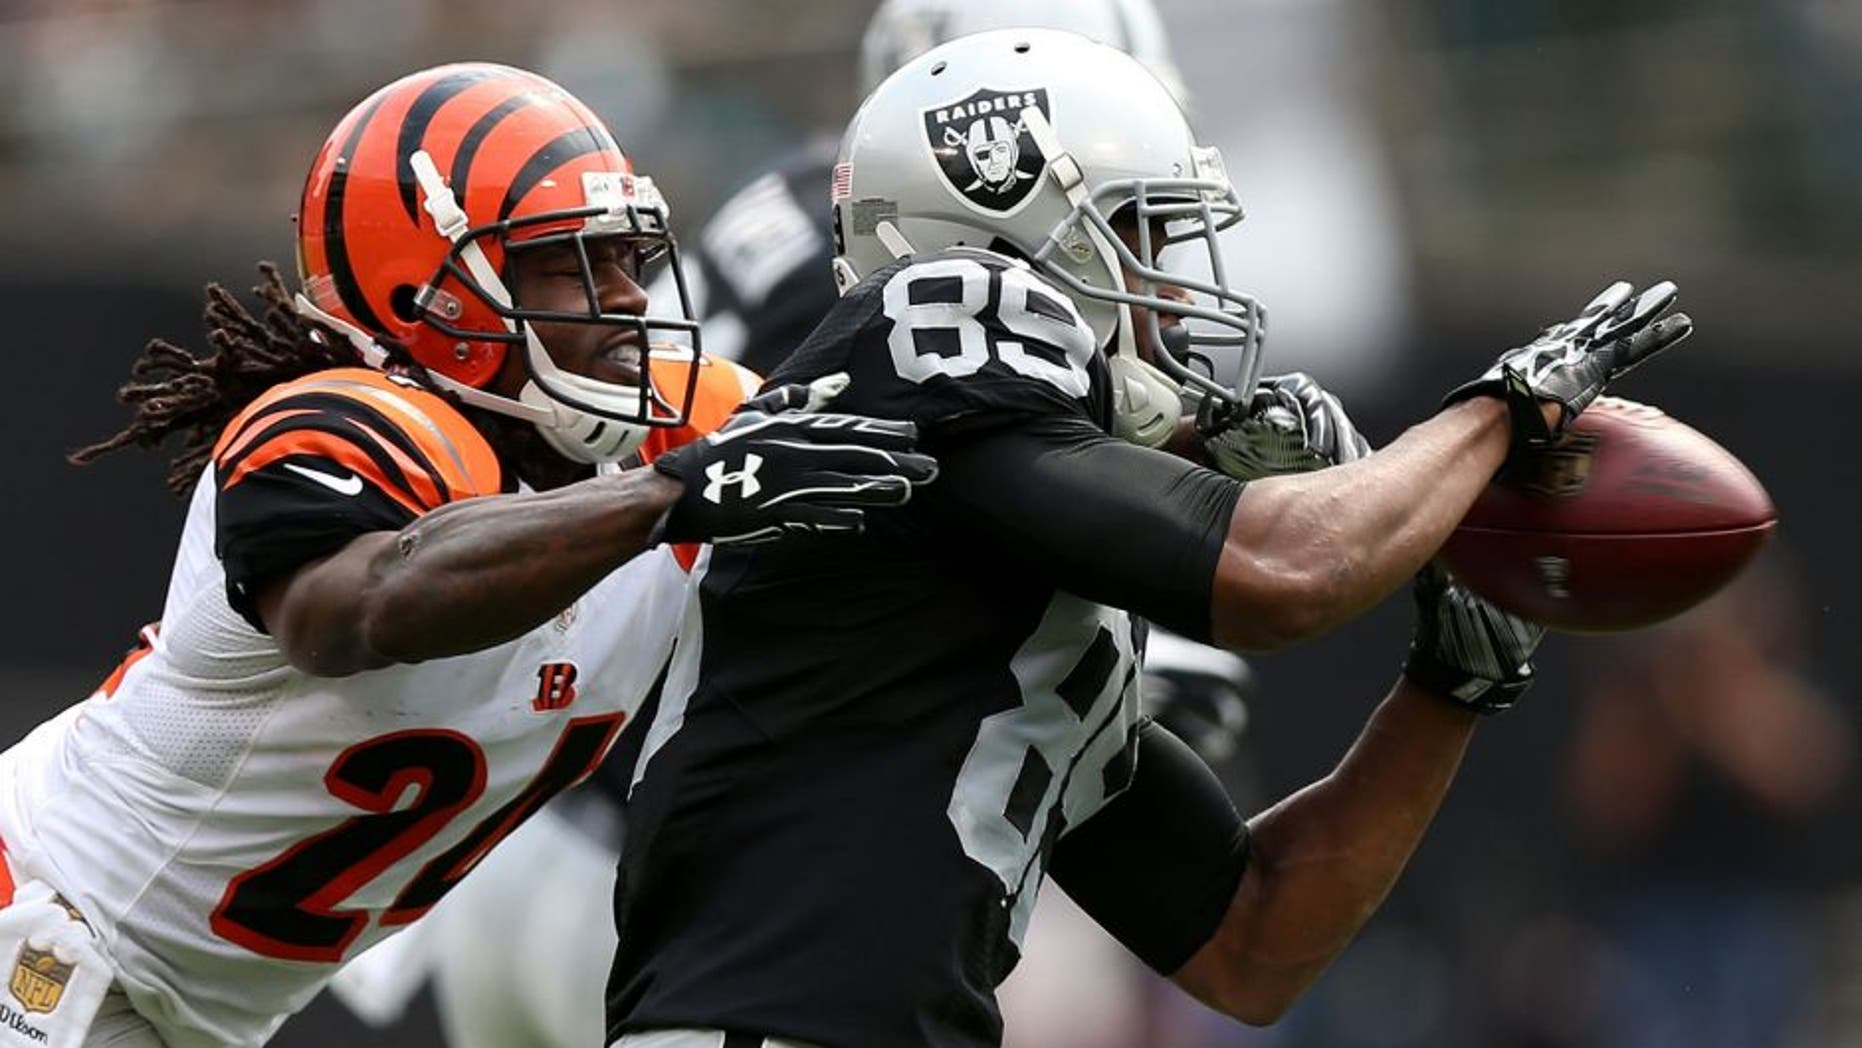 OAKLAND, CA - SEPTEMBER 13: Adam Jones #24 of the Cincinnati Bengals defends a pass to Amari Cooper #89 of the Oakland Raiders during the first half of their NFL game at O.co Coliseum on September 13, 2015 in Oakland, California. (Photo by Ezra Shaw/Getty Images)